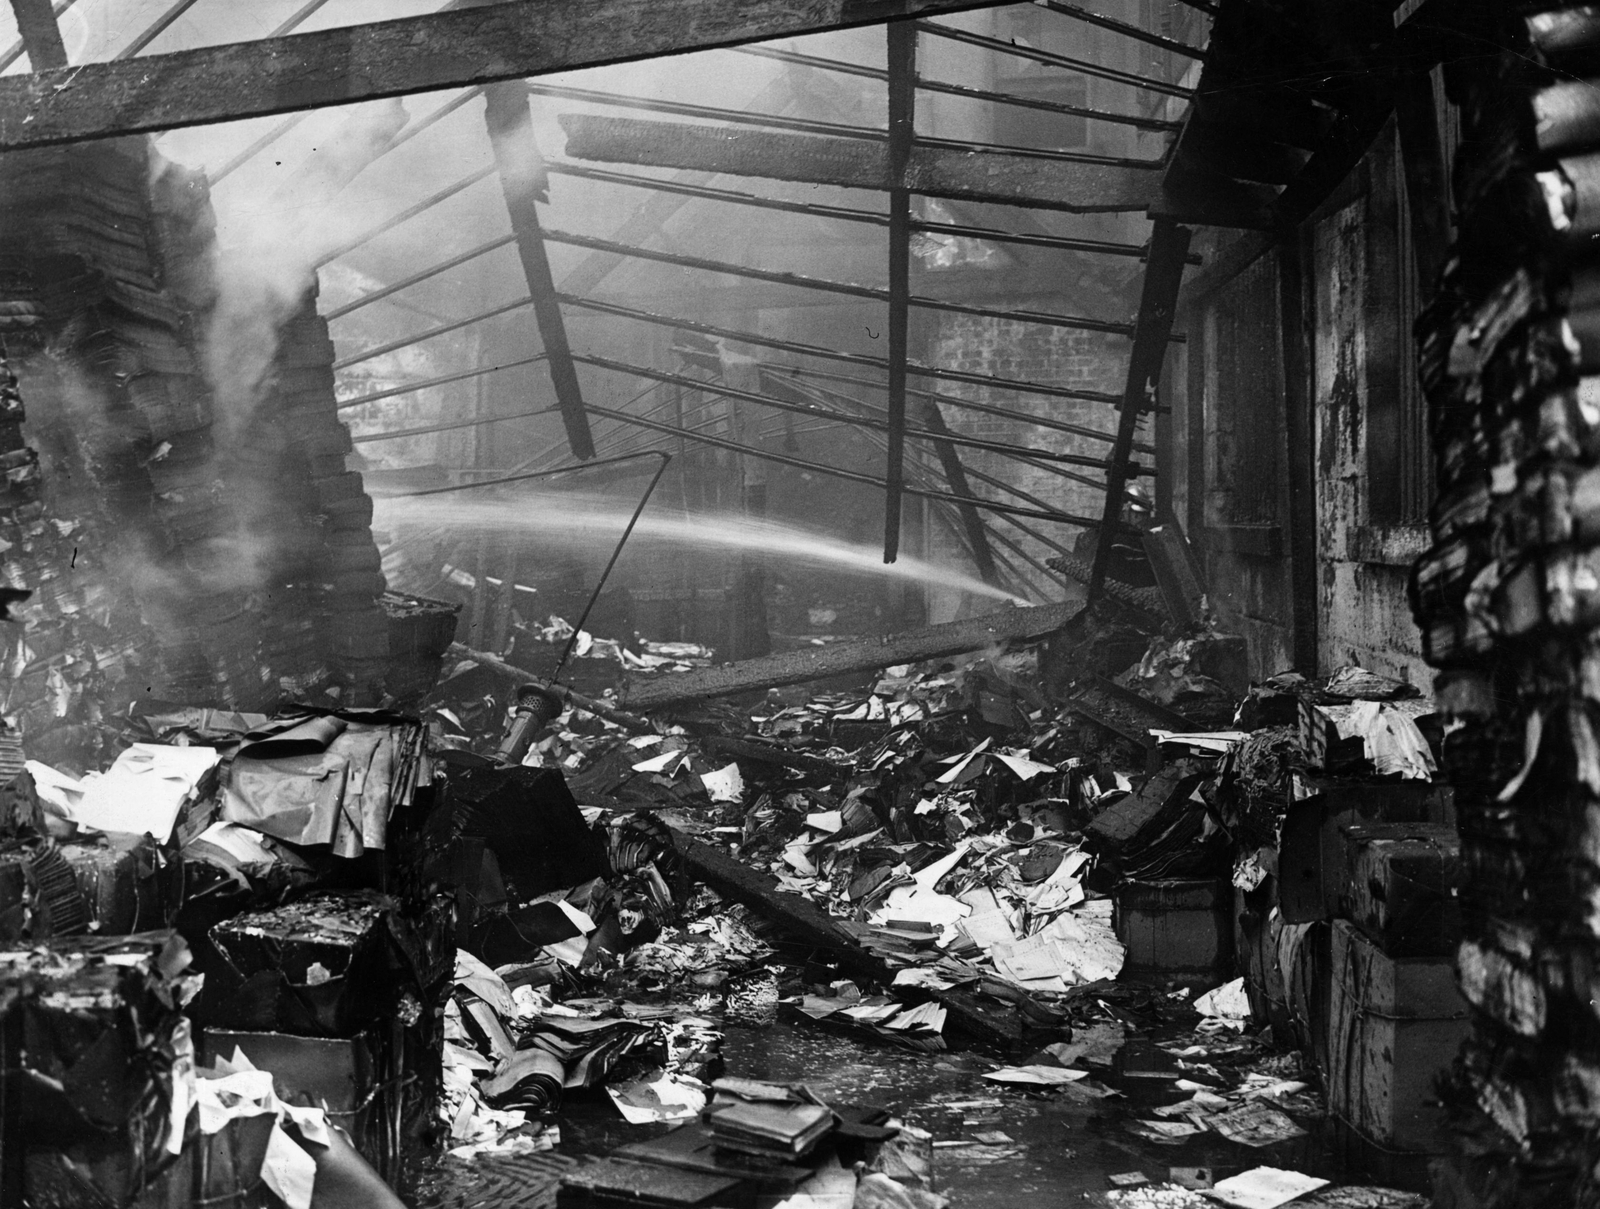 Image - The interior, destroyed in the fire, then soaked in water. Credit: Getty Images.